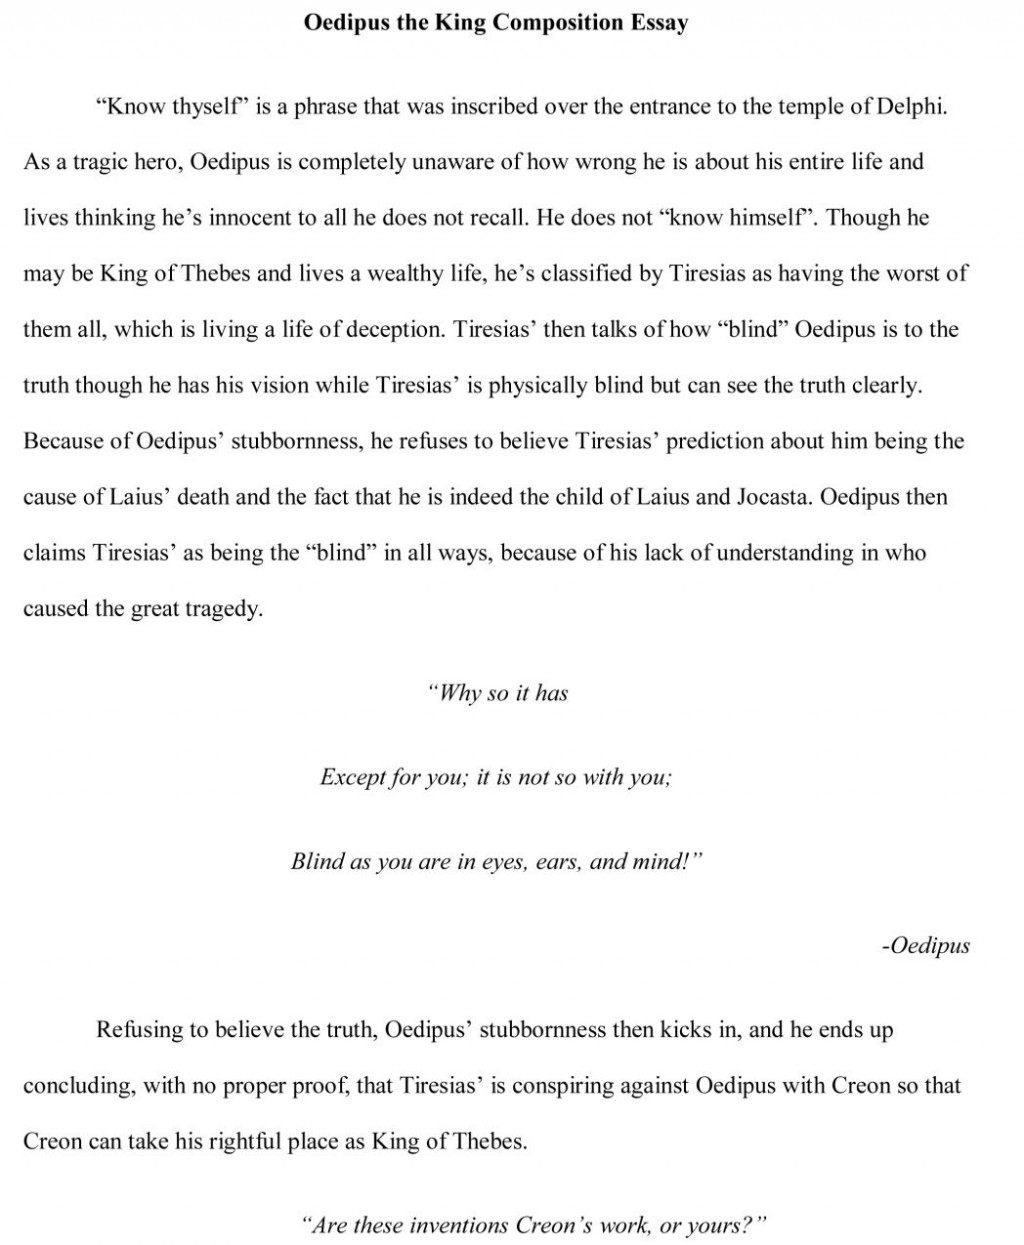 008 Renaissance Essay Example Questions Paper Topics Funny Research Oedipus Free S Argumentative For Middle School College Students Hilarious Good Surprising History Art Thesis Large